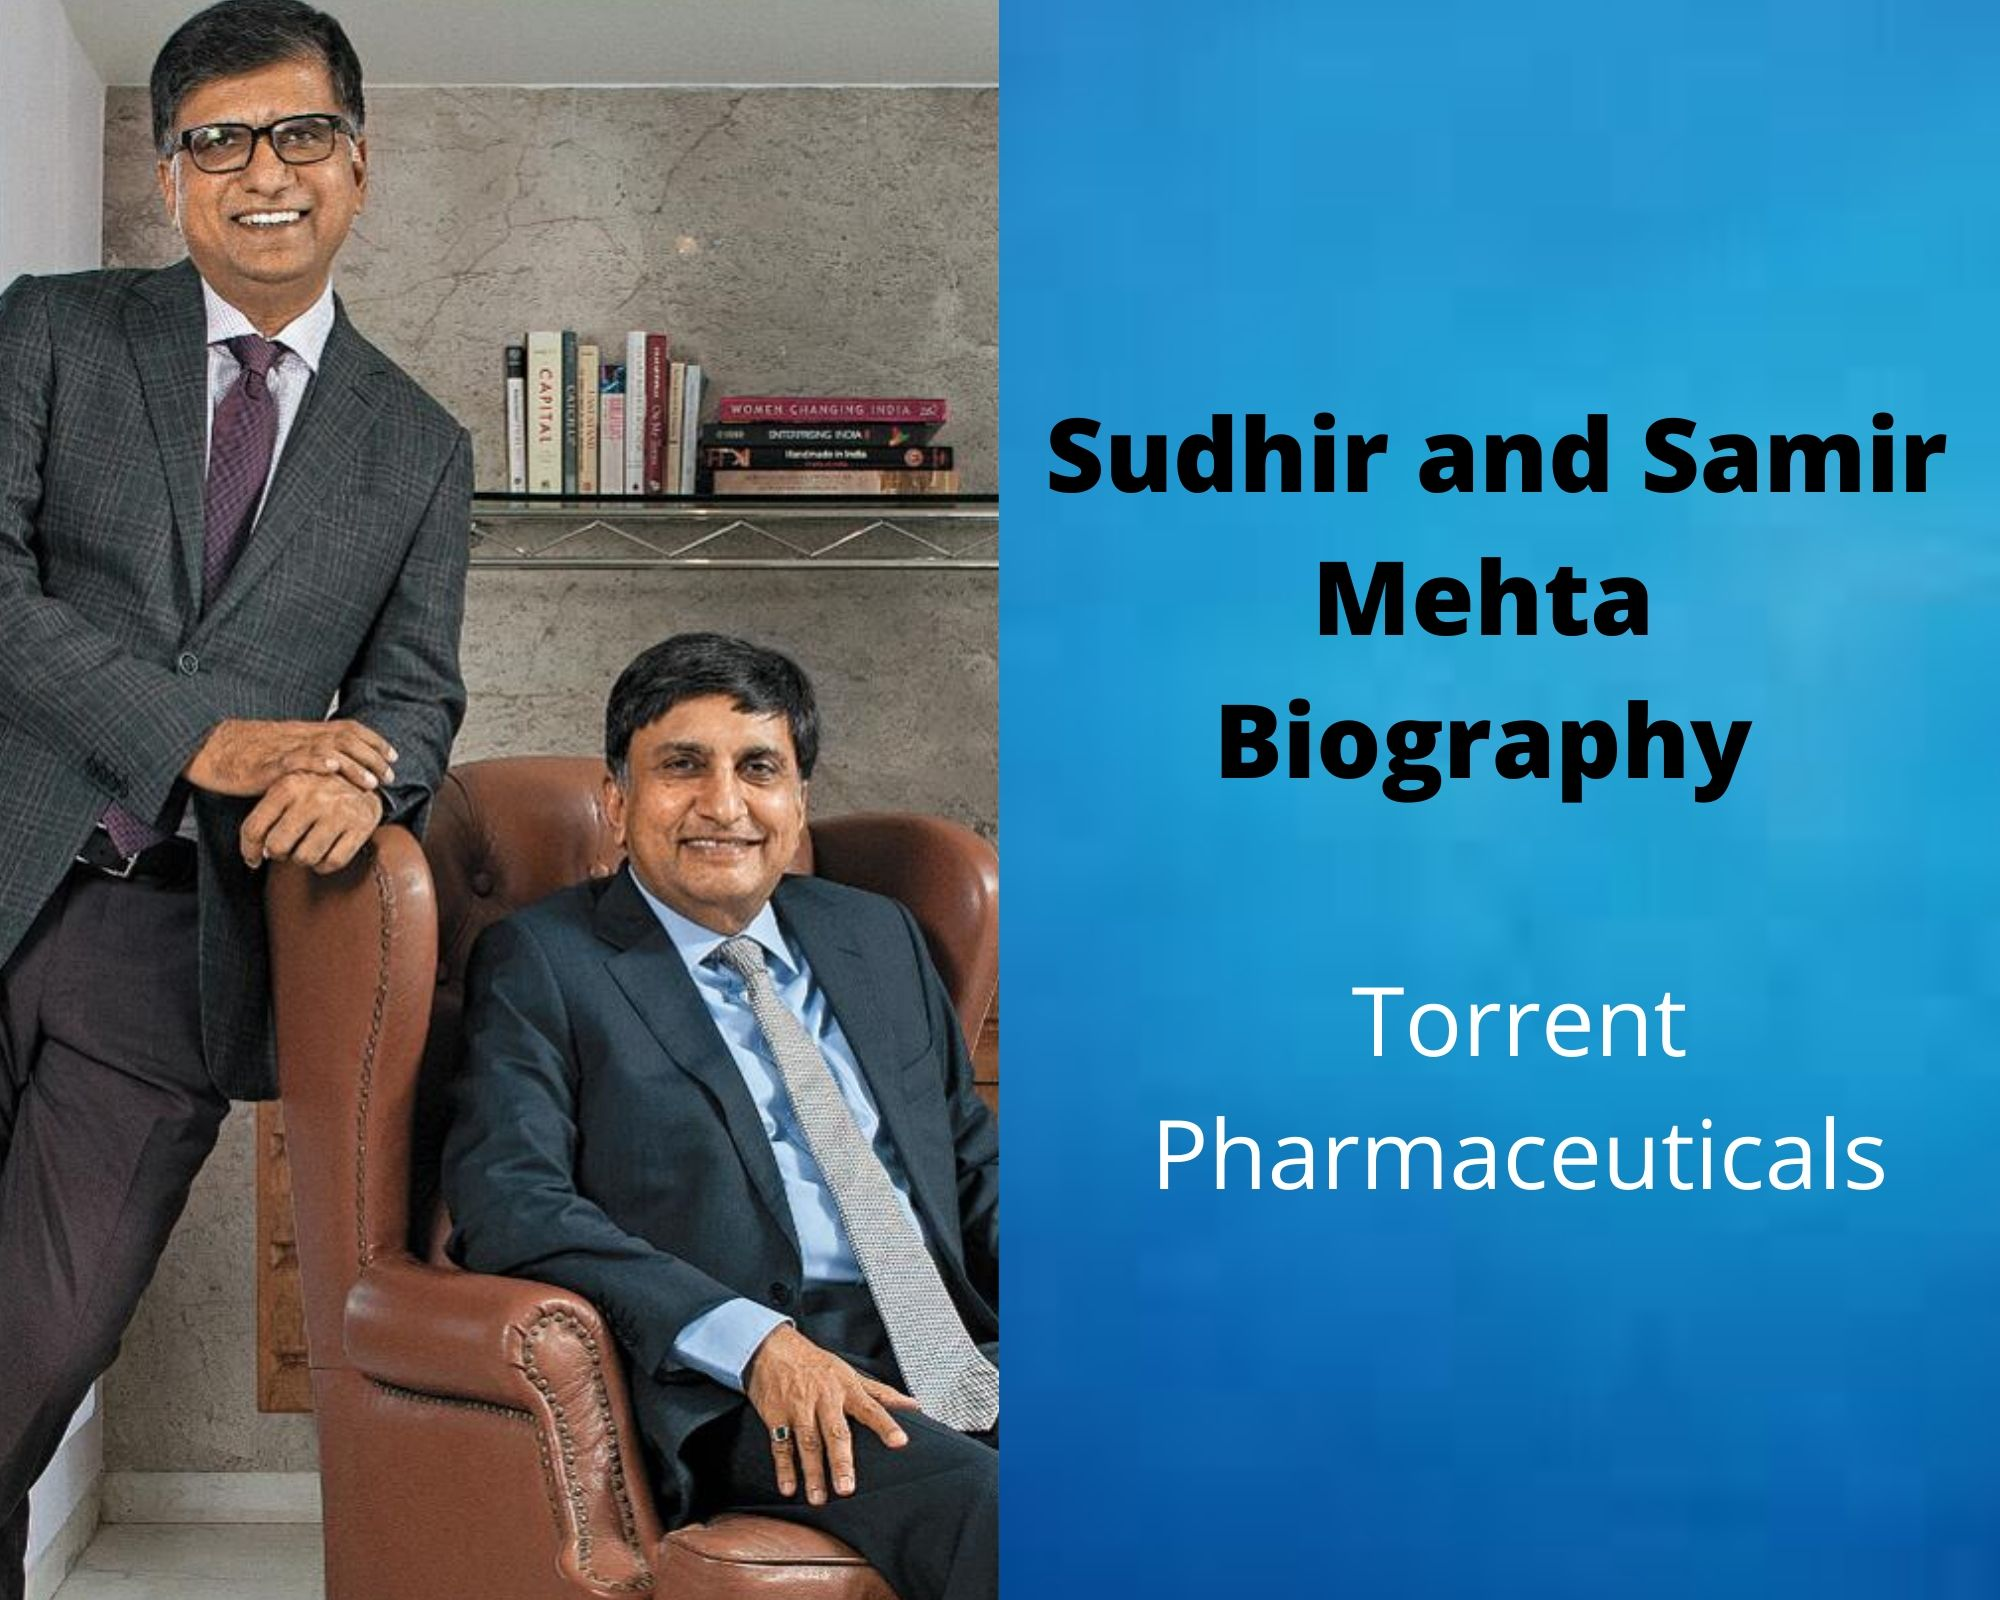 Sudhir-and-Samir-Mehta-Biography.